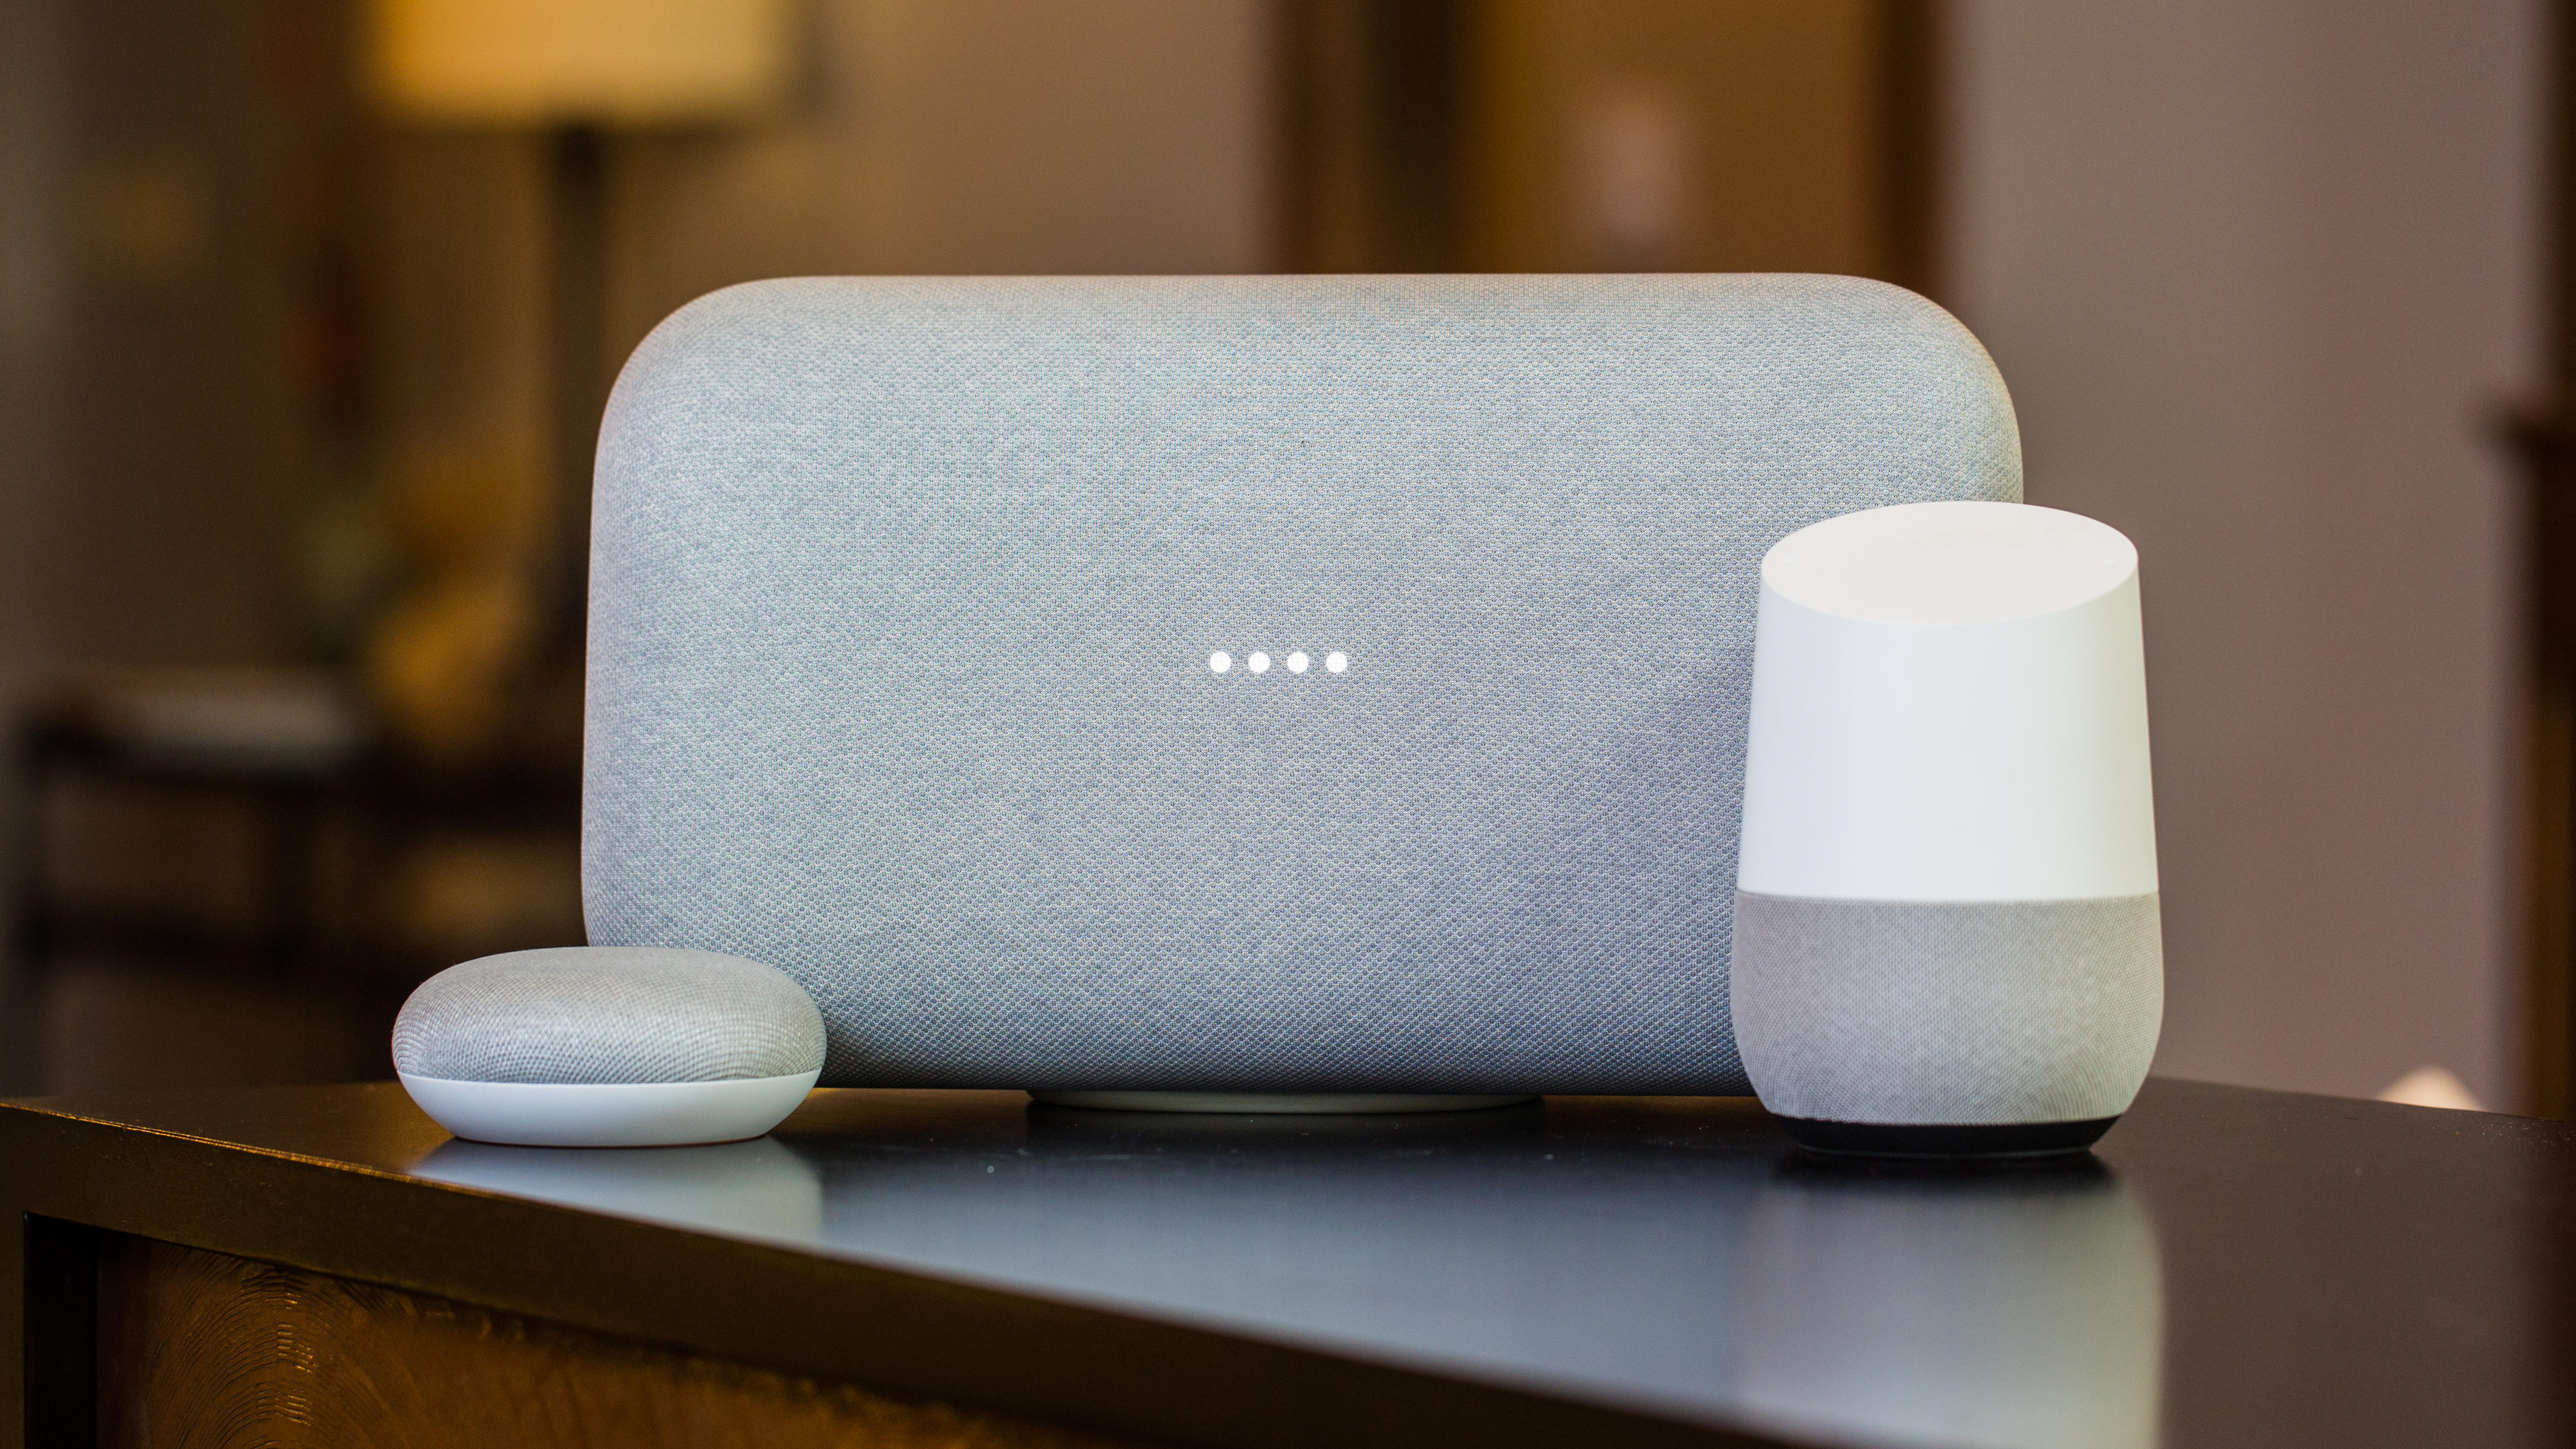 Everything you need to know about Google Home - CNET